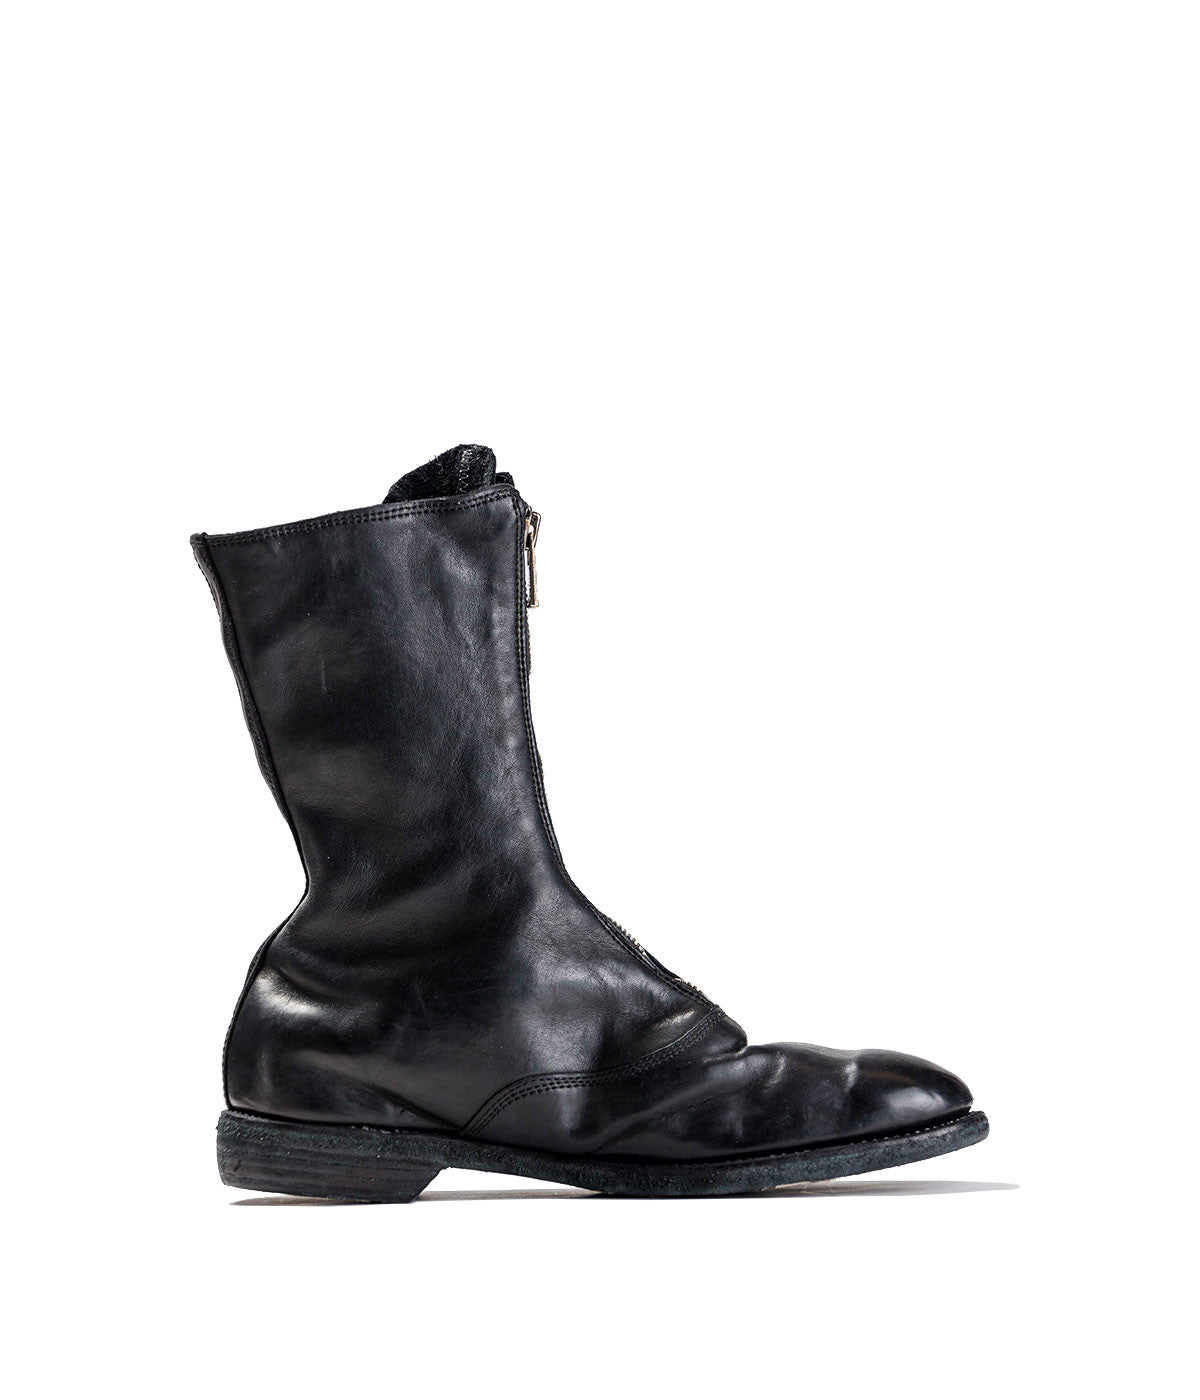 Black Wingtip Horse Leather Boots